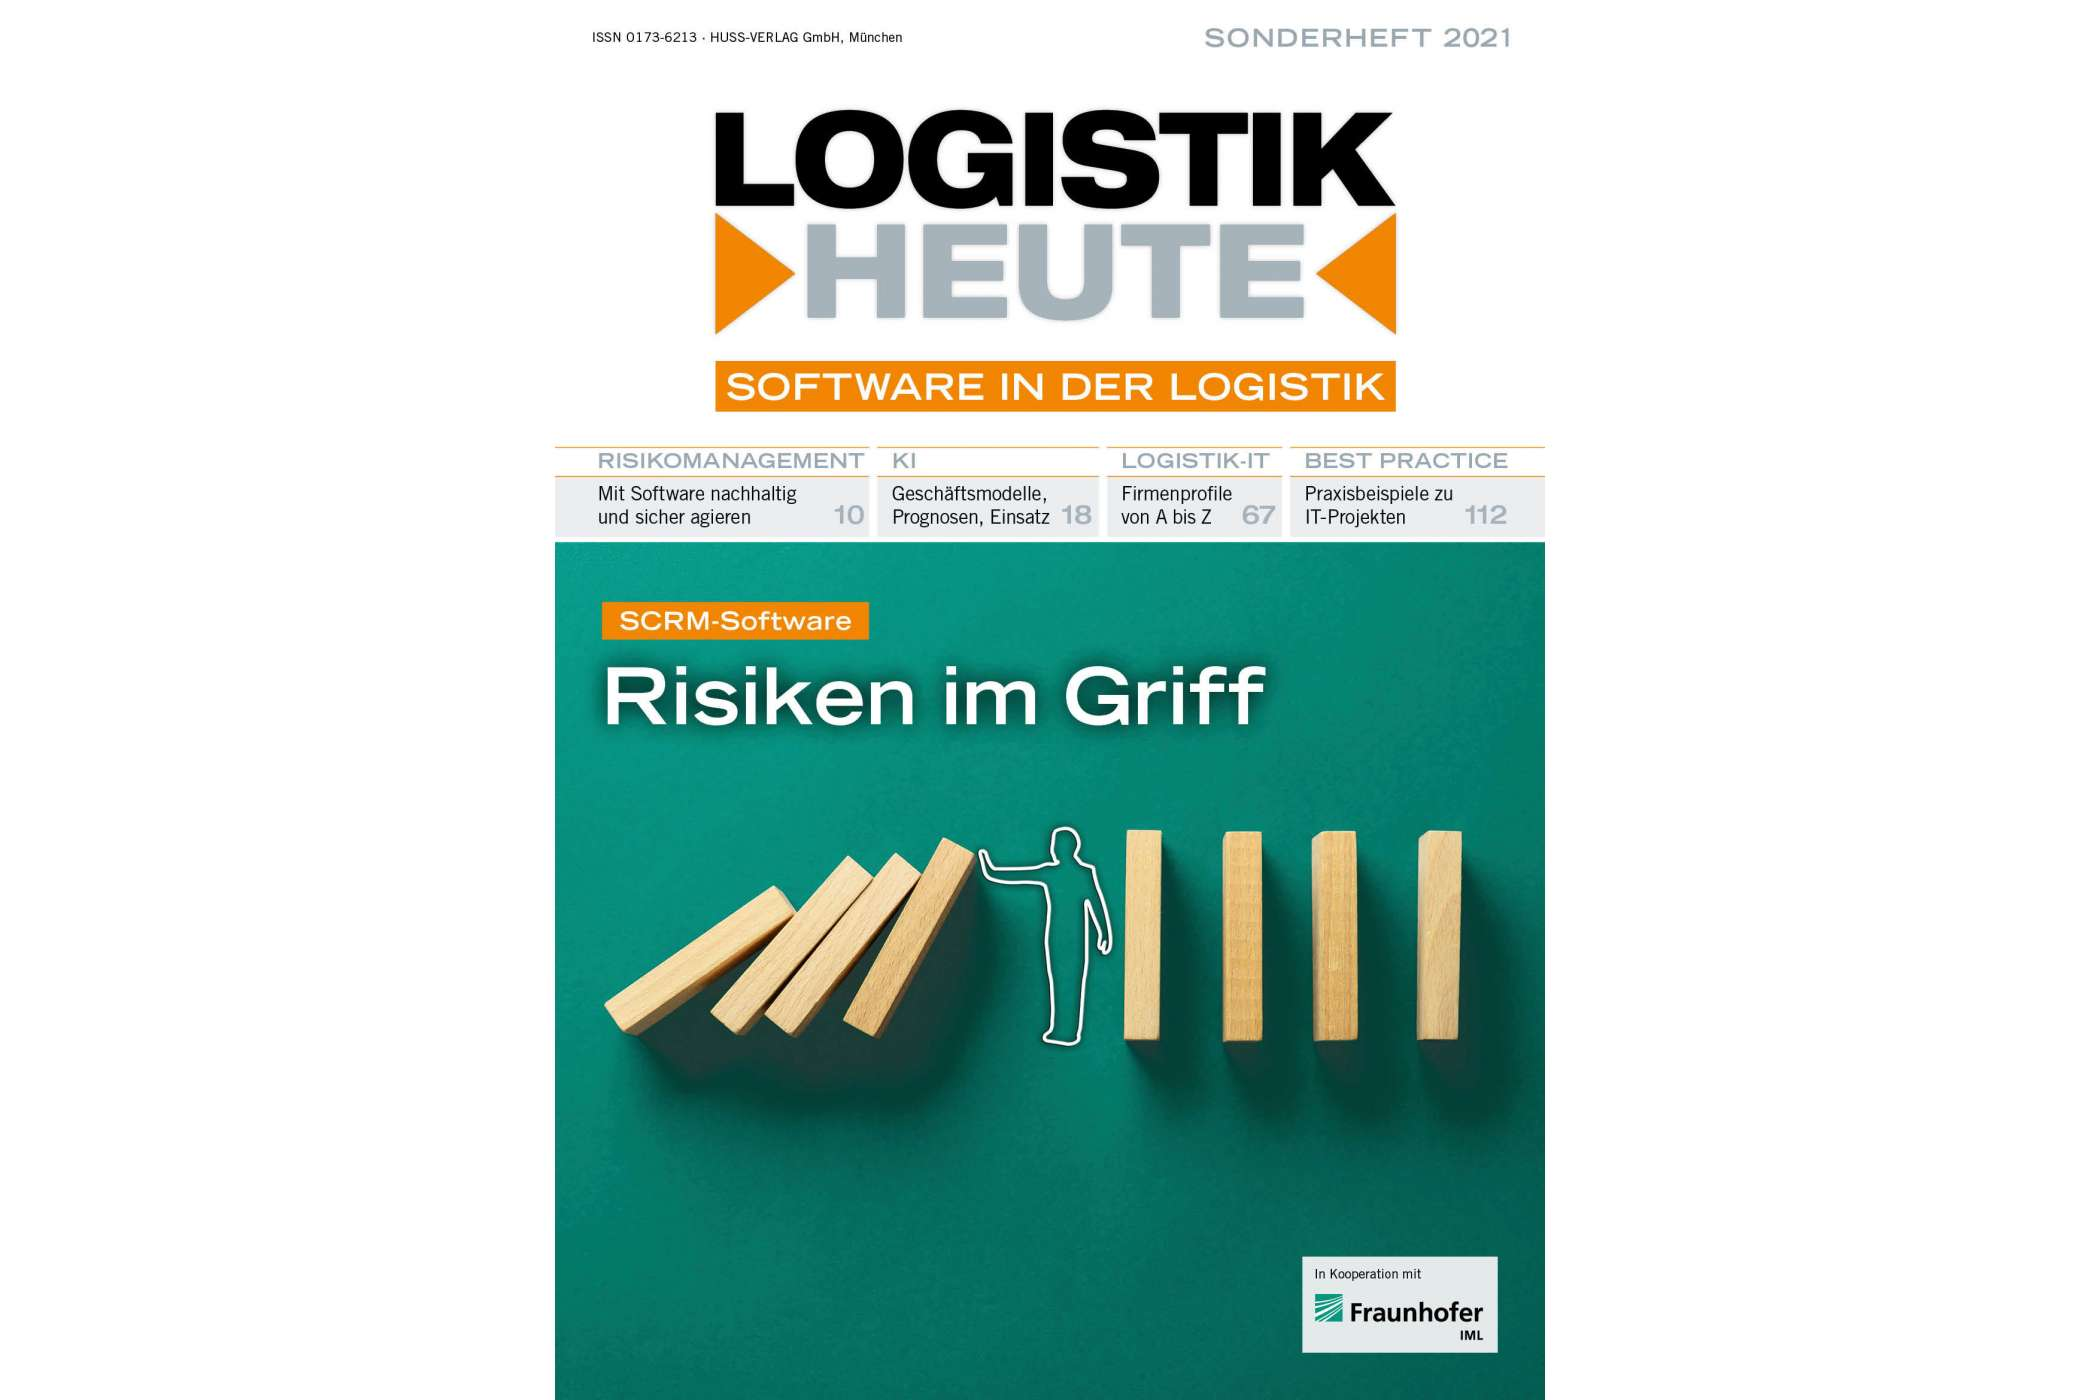 Sonderheft Software in der Logistik 2021